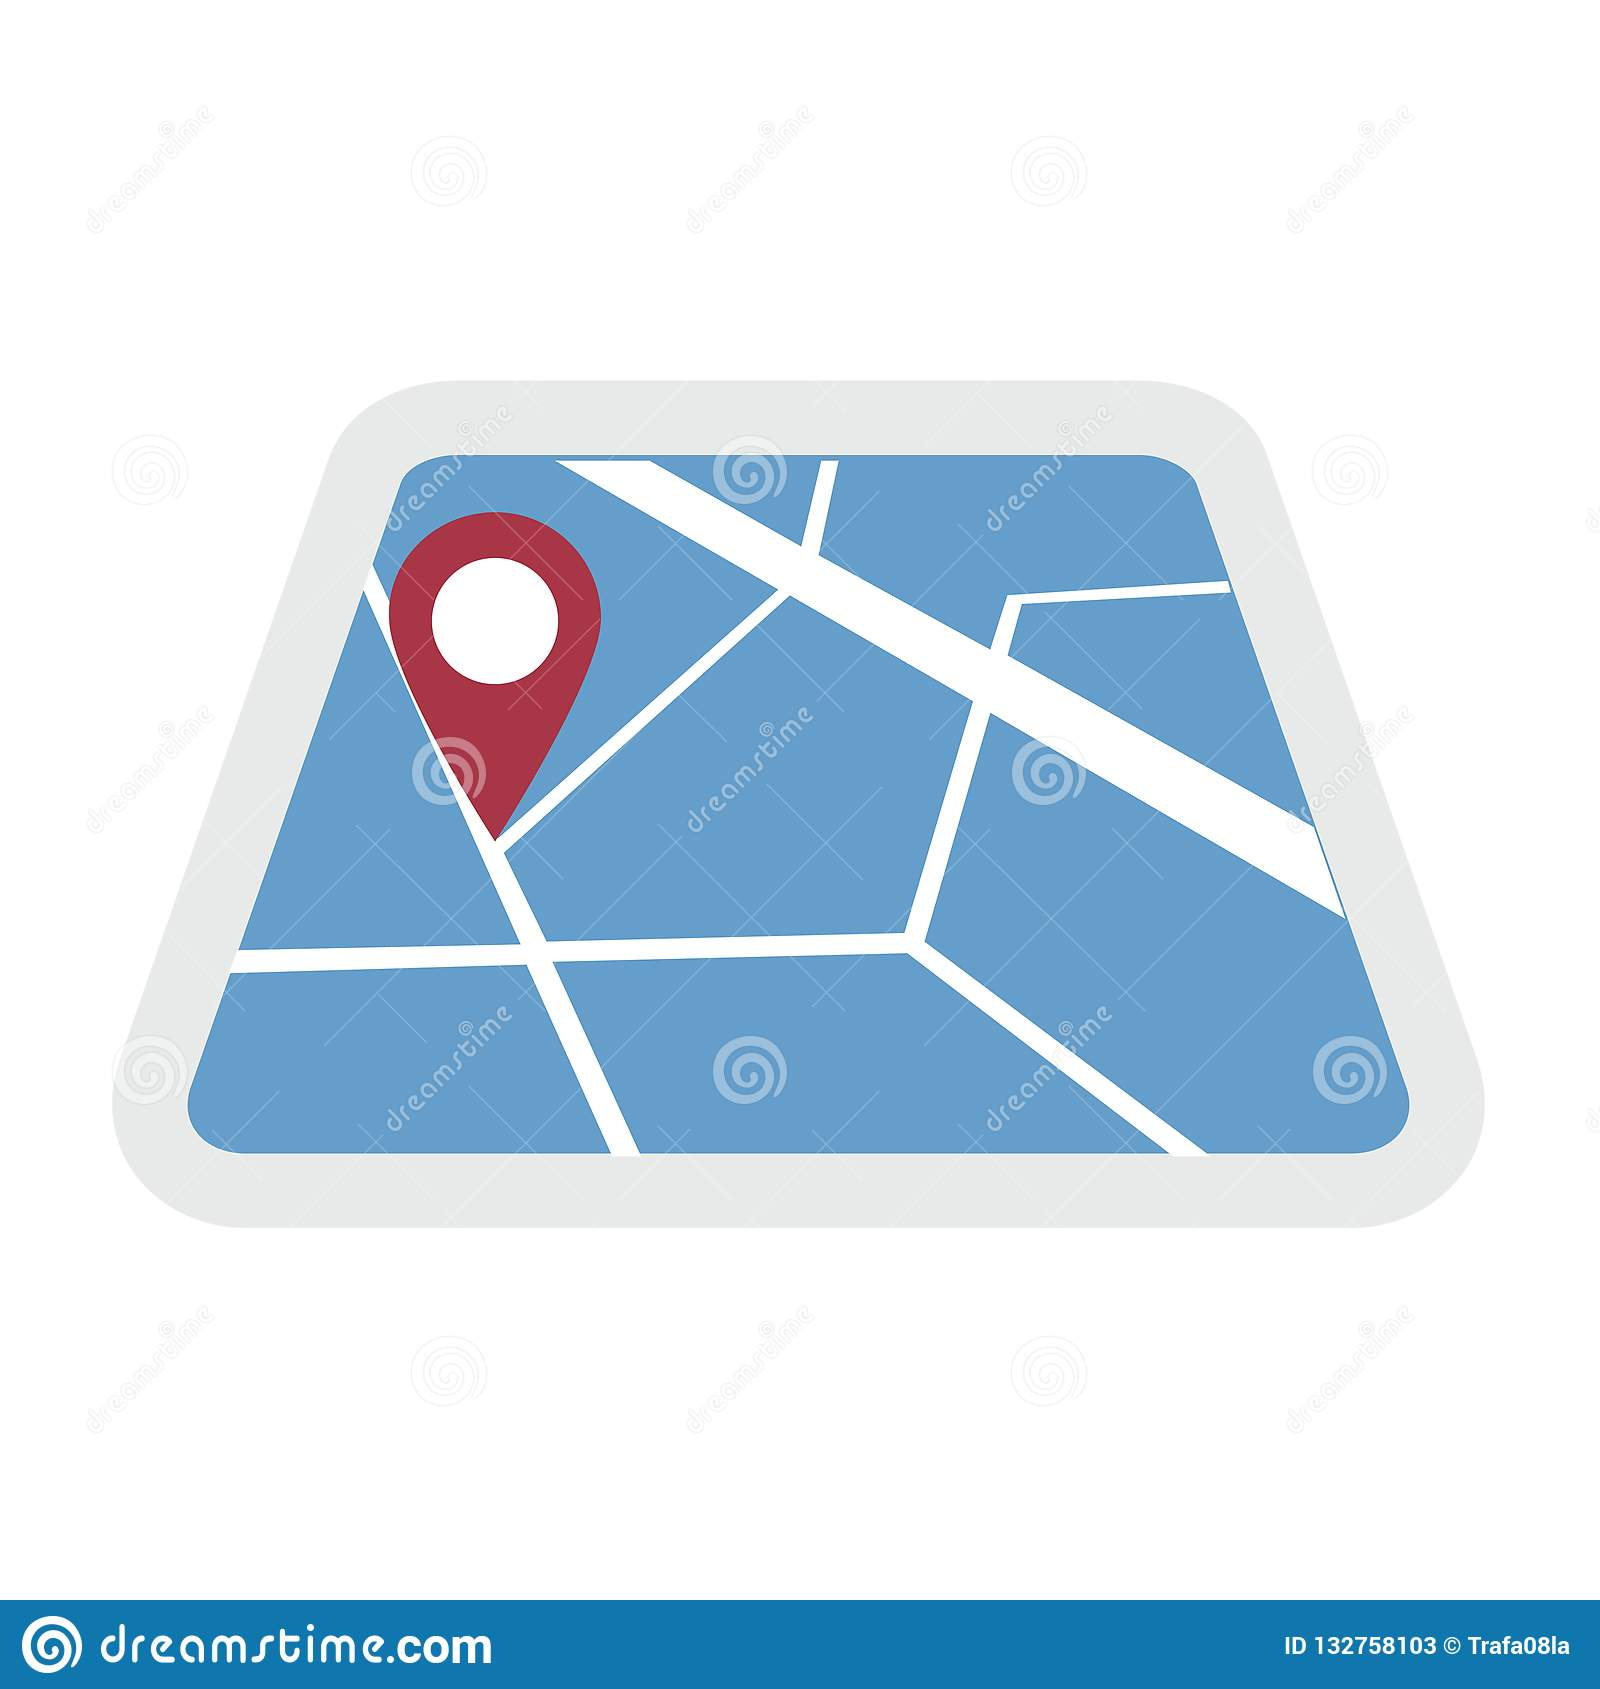 Map Marker Icon, Comp, Vector Pin Location, Gps Icon ... on icon staff, icon transportation, icon services, icon police, icon schedule, icon calendar, icon employment, icon procurement, icon history, icon contact, icon home, icon medical, icon weather, icon meals,